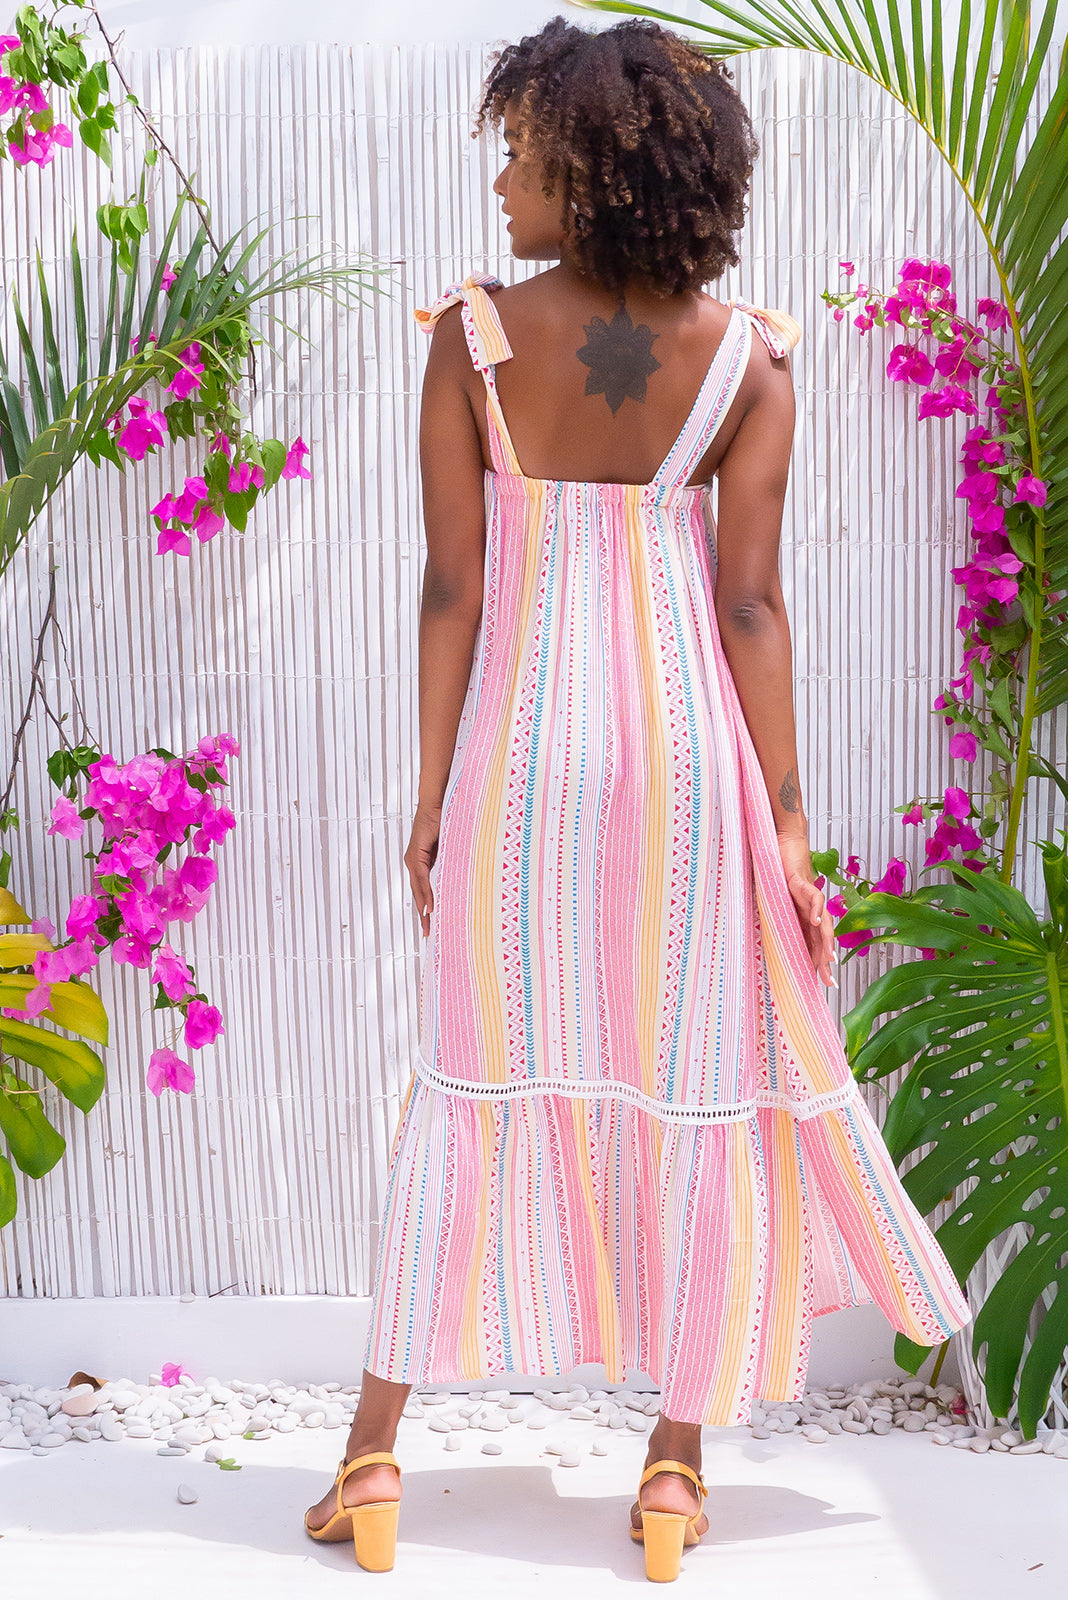 Moon Kiss Lucky Stripes Maxi Dress made in woven 100% crinkle viscose in vertical stripes and shapes in white, blue, pastel yellow, gold and watermelon tones features adjustable tie up straps, lace detailing around top, small split detail on both sides of hem, side pockets, frill hem feature.